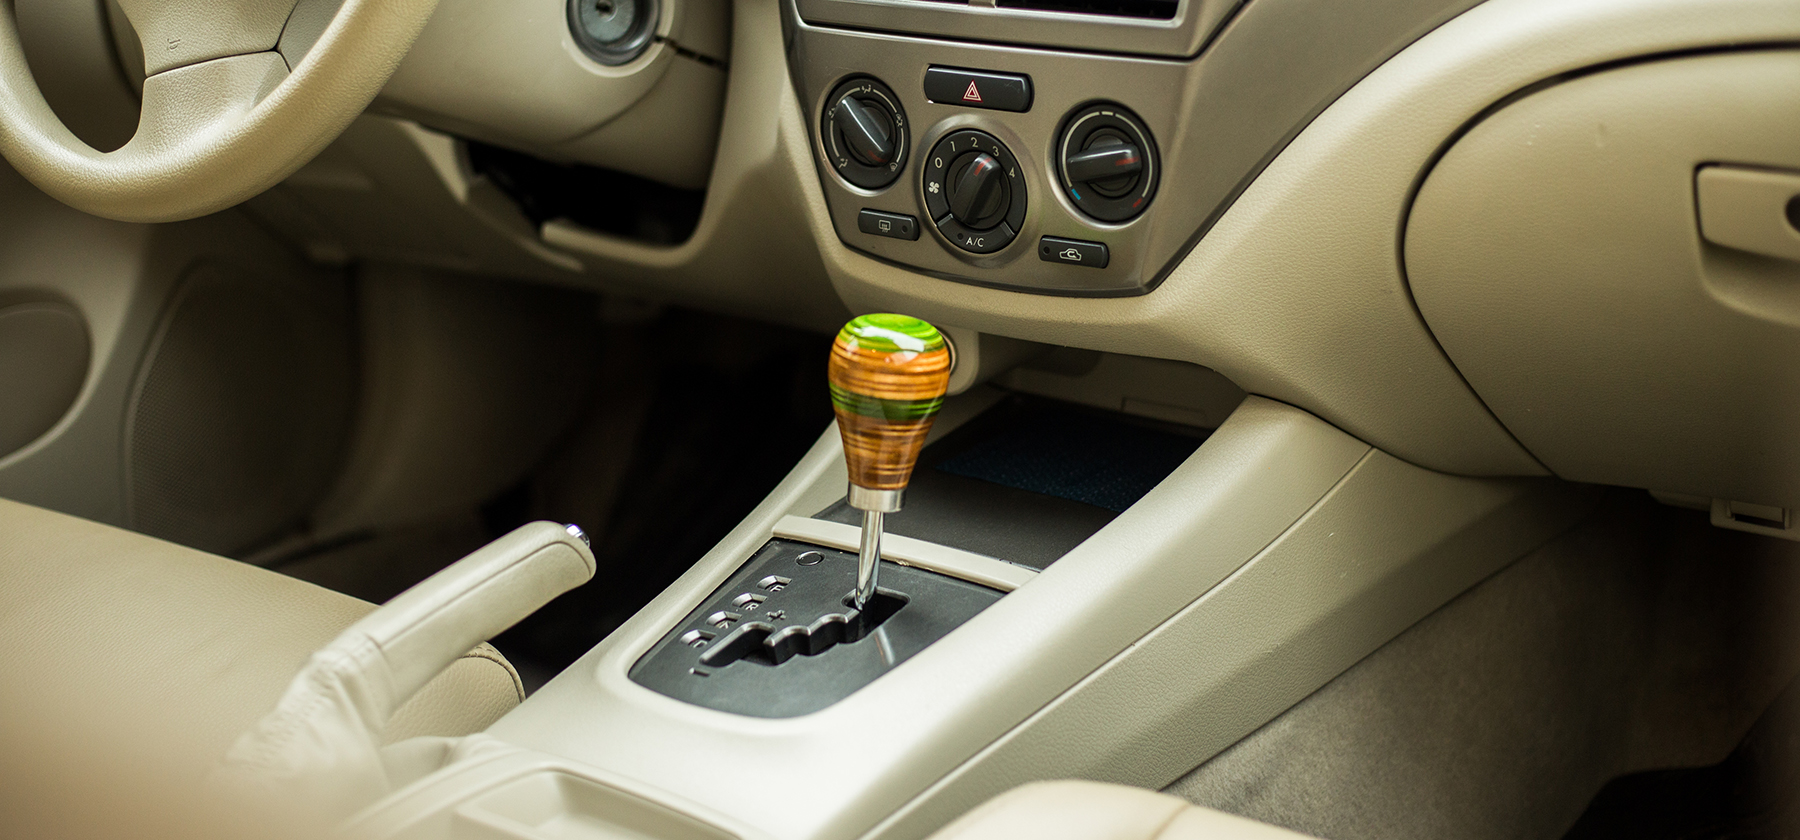 weighted shift knob